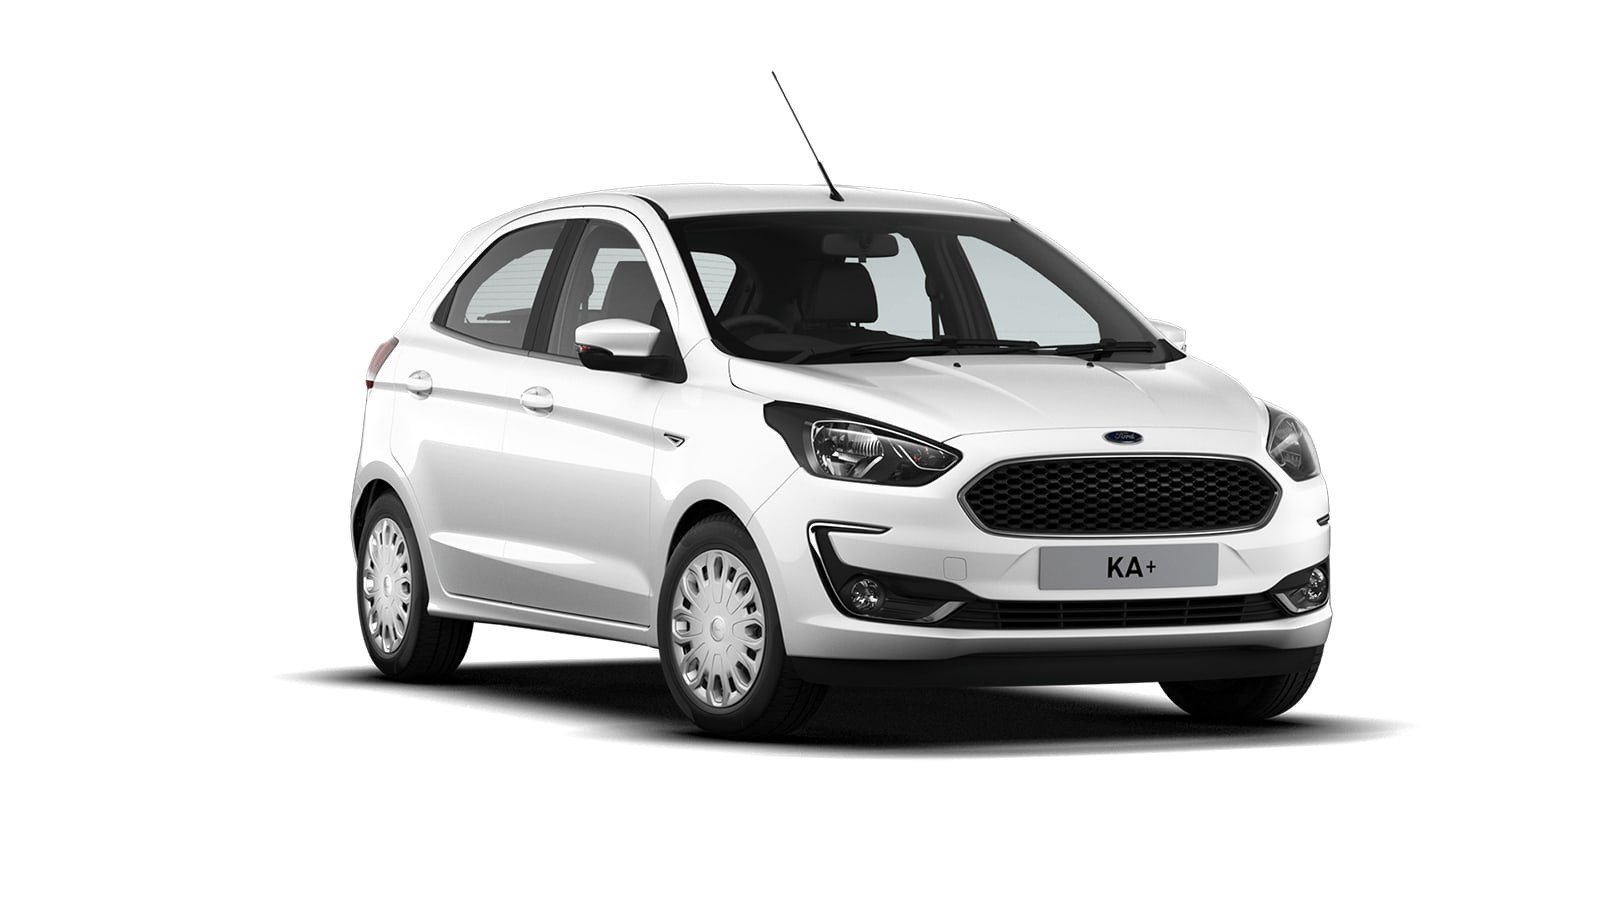 New Ford KA+ Dealer | New Ford KA+ Review and Prices | Ford KA Plus for  Sale in Kidderminster & Malvern